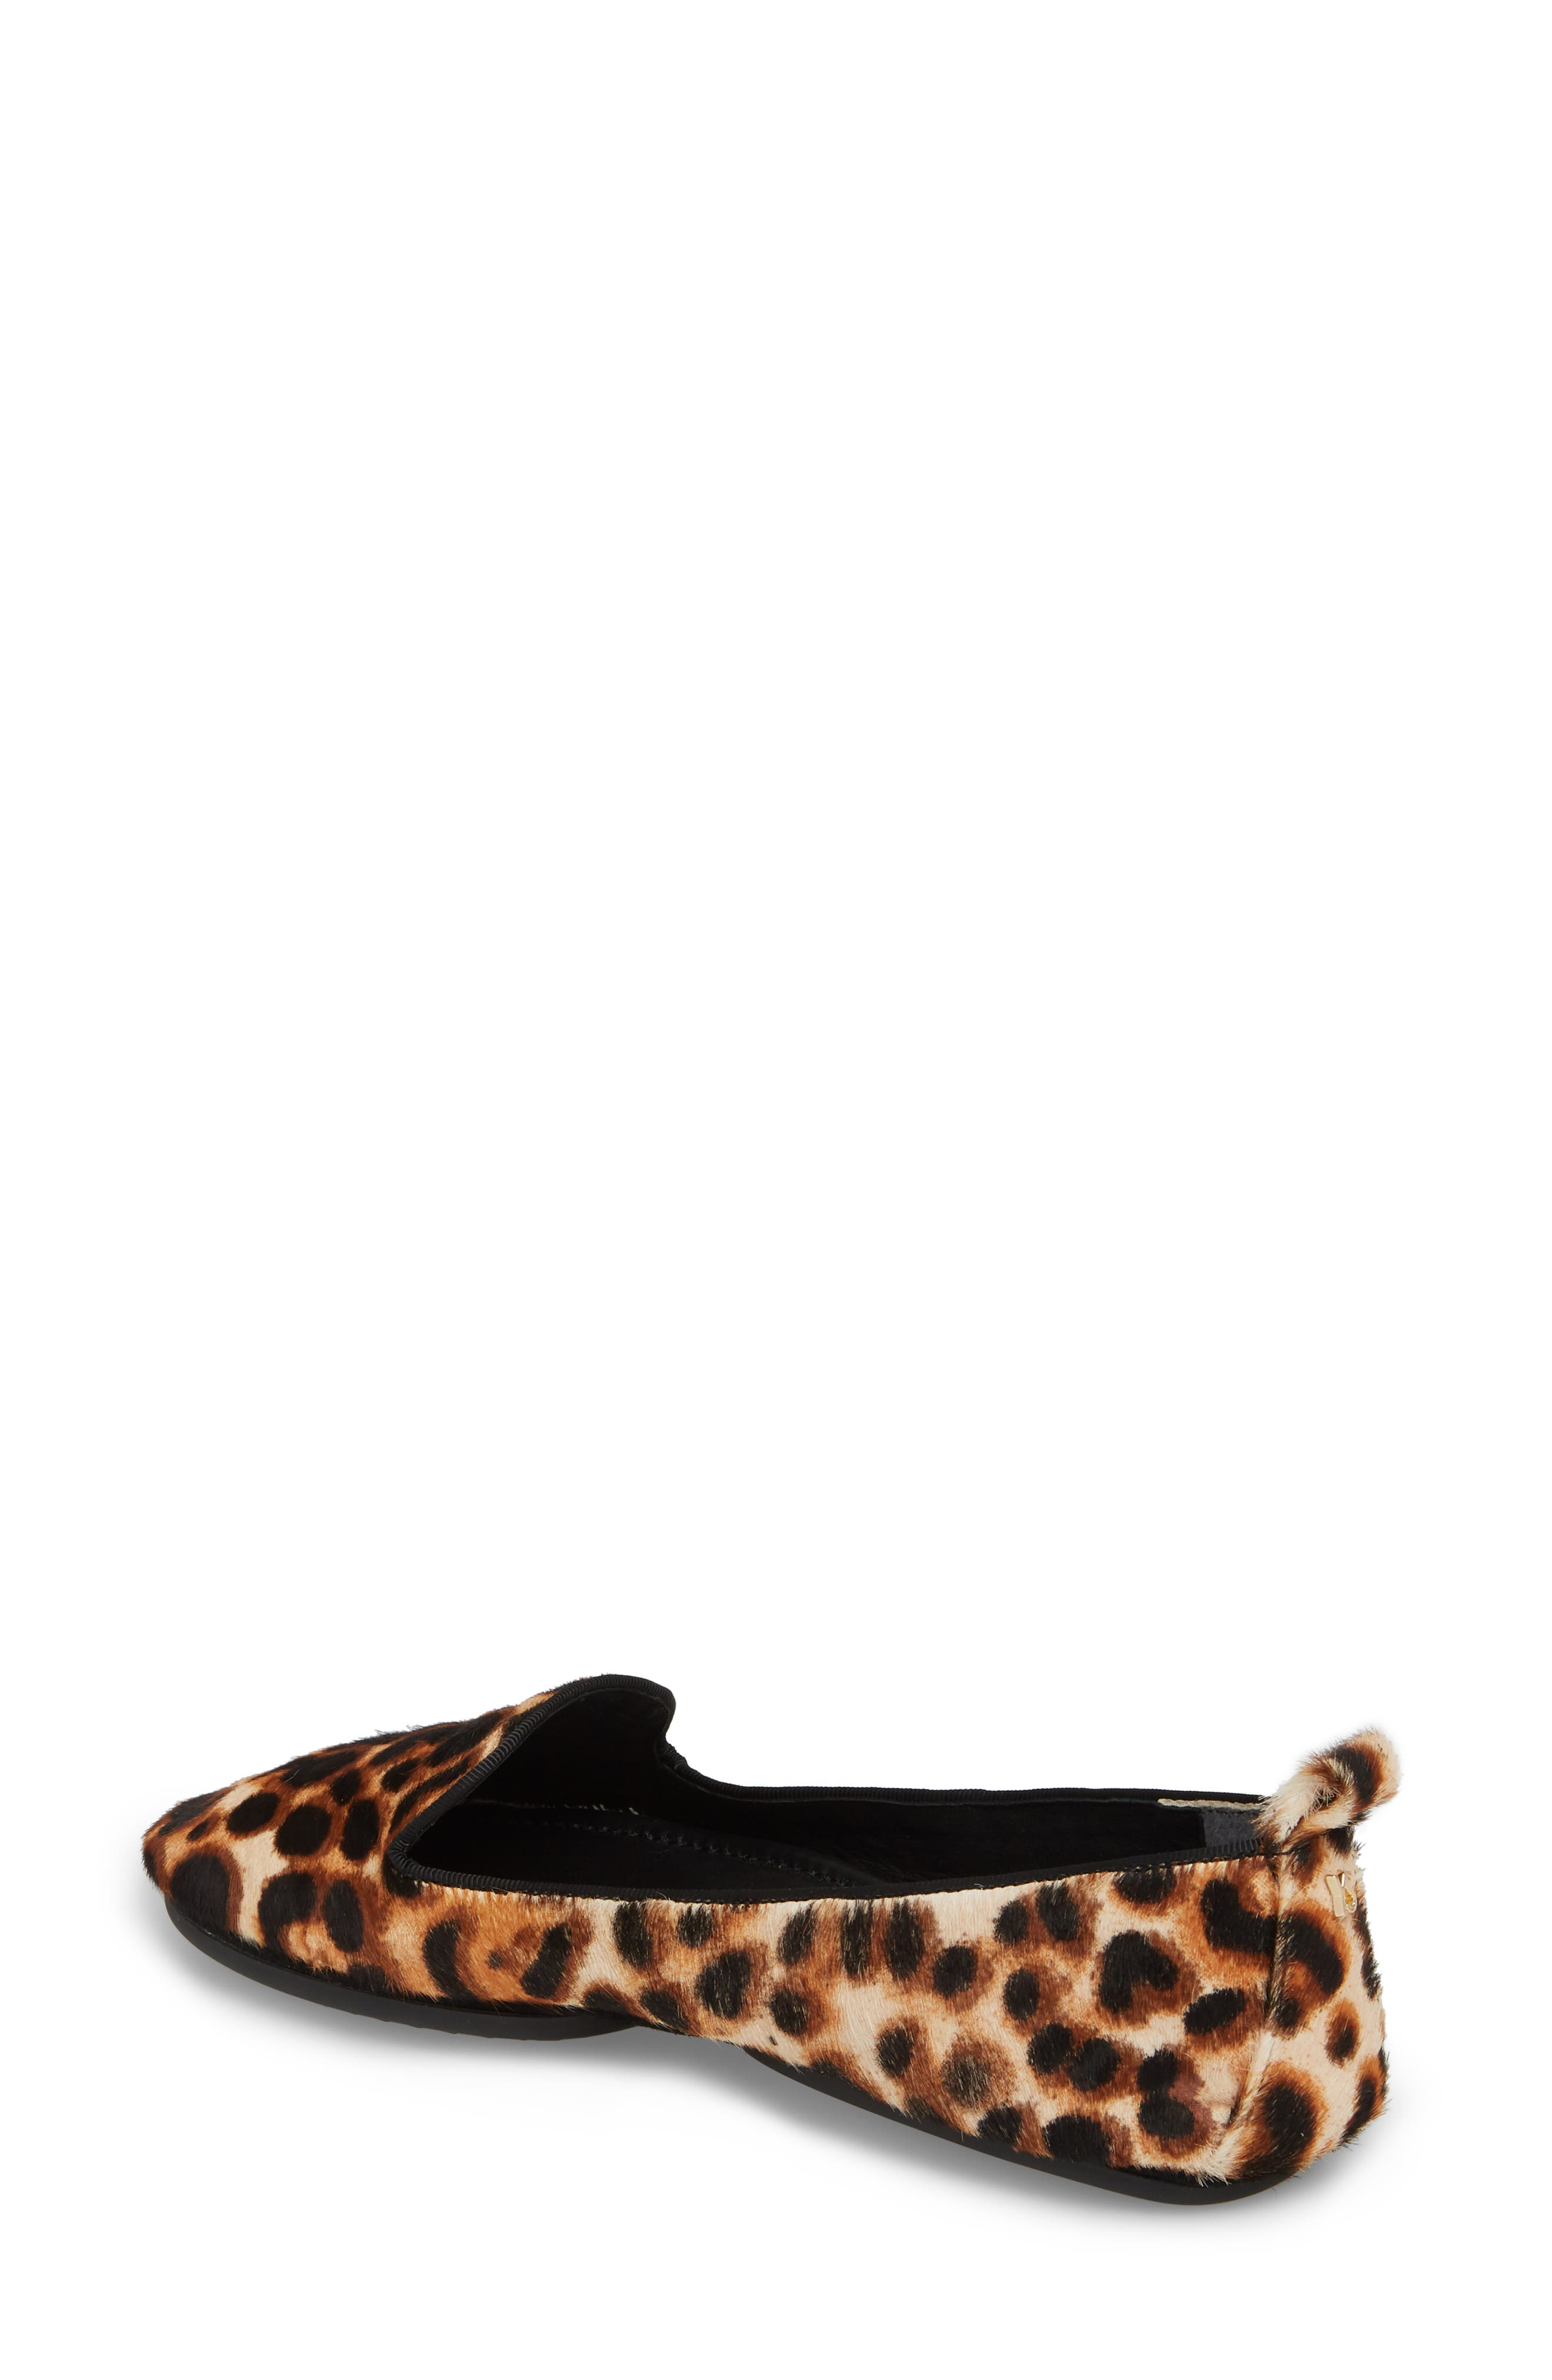 Silva Genuine Calf Hair Loafer,                             Alternate thumbnail 2, color,                             Natural Leopard Calf Hair